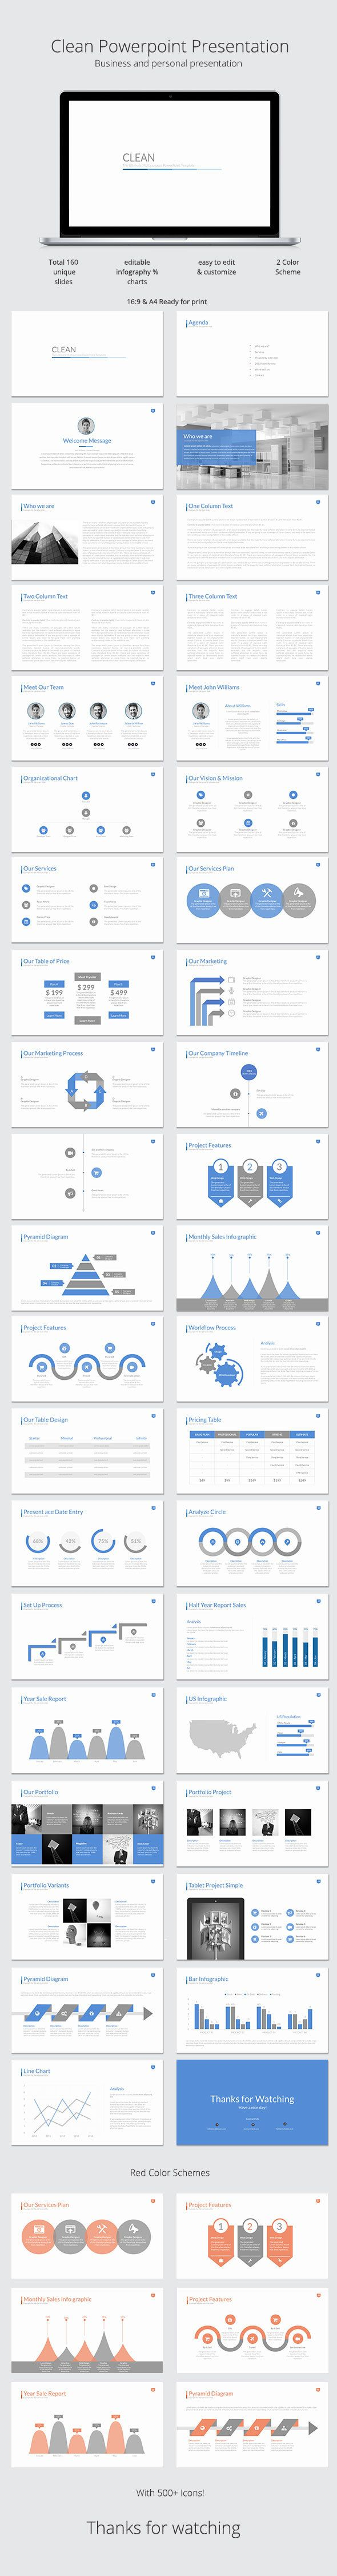 Coolmathgamesus  Personable  Ideas About Powerpoint Presentations On Pinterest With Extraordinary Clean Powerpoint Template With Delightful Data Mining Powerpoint Also Dimensions Powerpoint In Addition Word Excel Access Powerpoint And Powerpoint Presentations Sample As Well As Themes Powerpoint Free Download Additionally Drinking And Driving Powerpoint Presentation From Pinterestcom With Coolmathgamesus  Extraordinary  Ideas About Powerpoint Presentations On Pinterest With Delightful Clean Powerpoint Template And Personable Data Mining Powerpoint Also Dimensions Powerpoint In Addition Word Excel Access Powerpoint From Pinterestcom